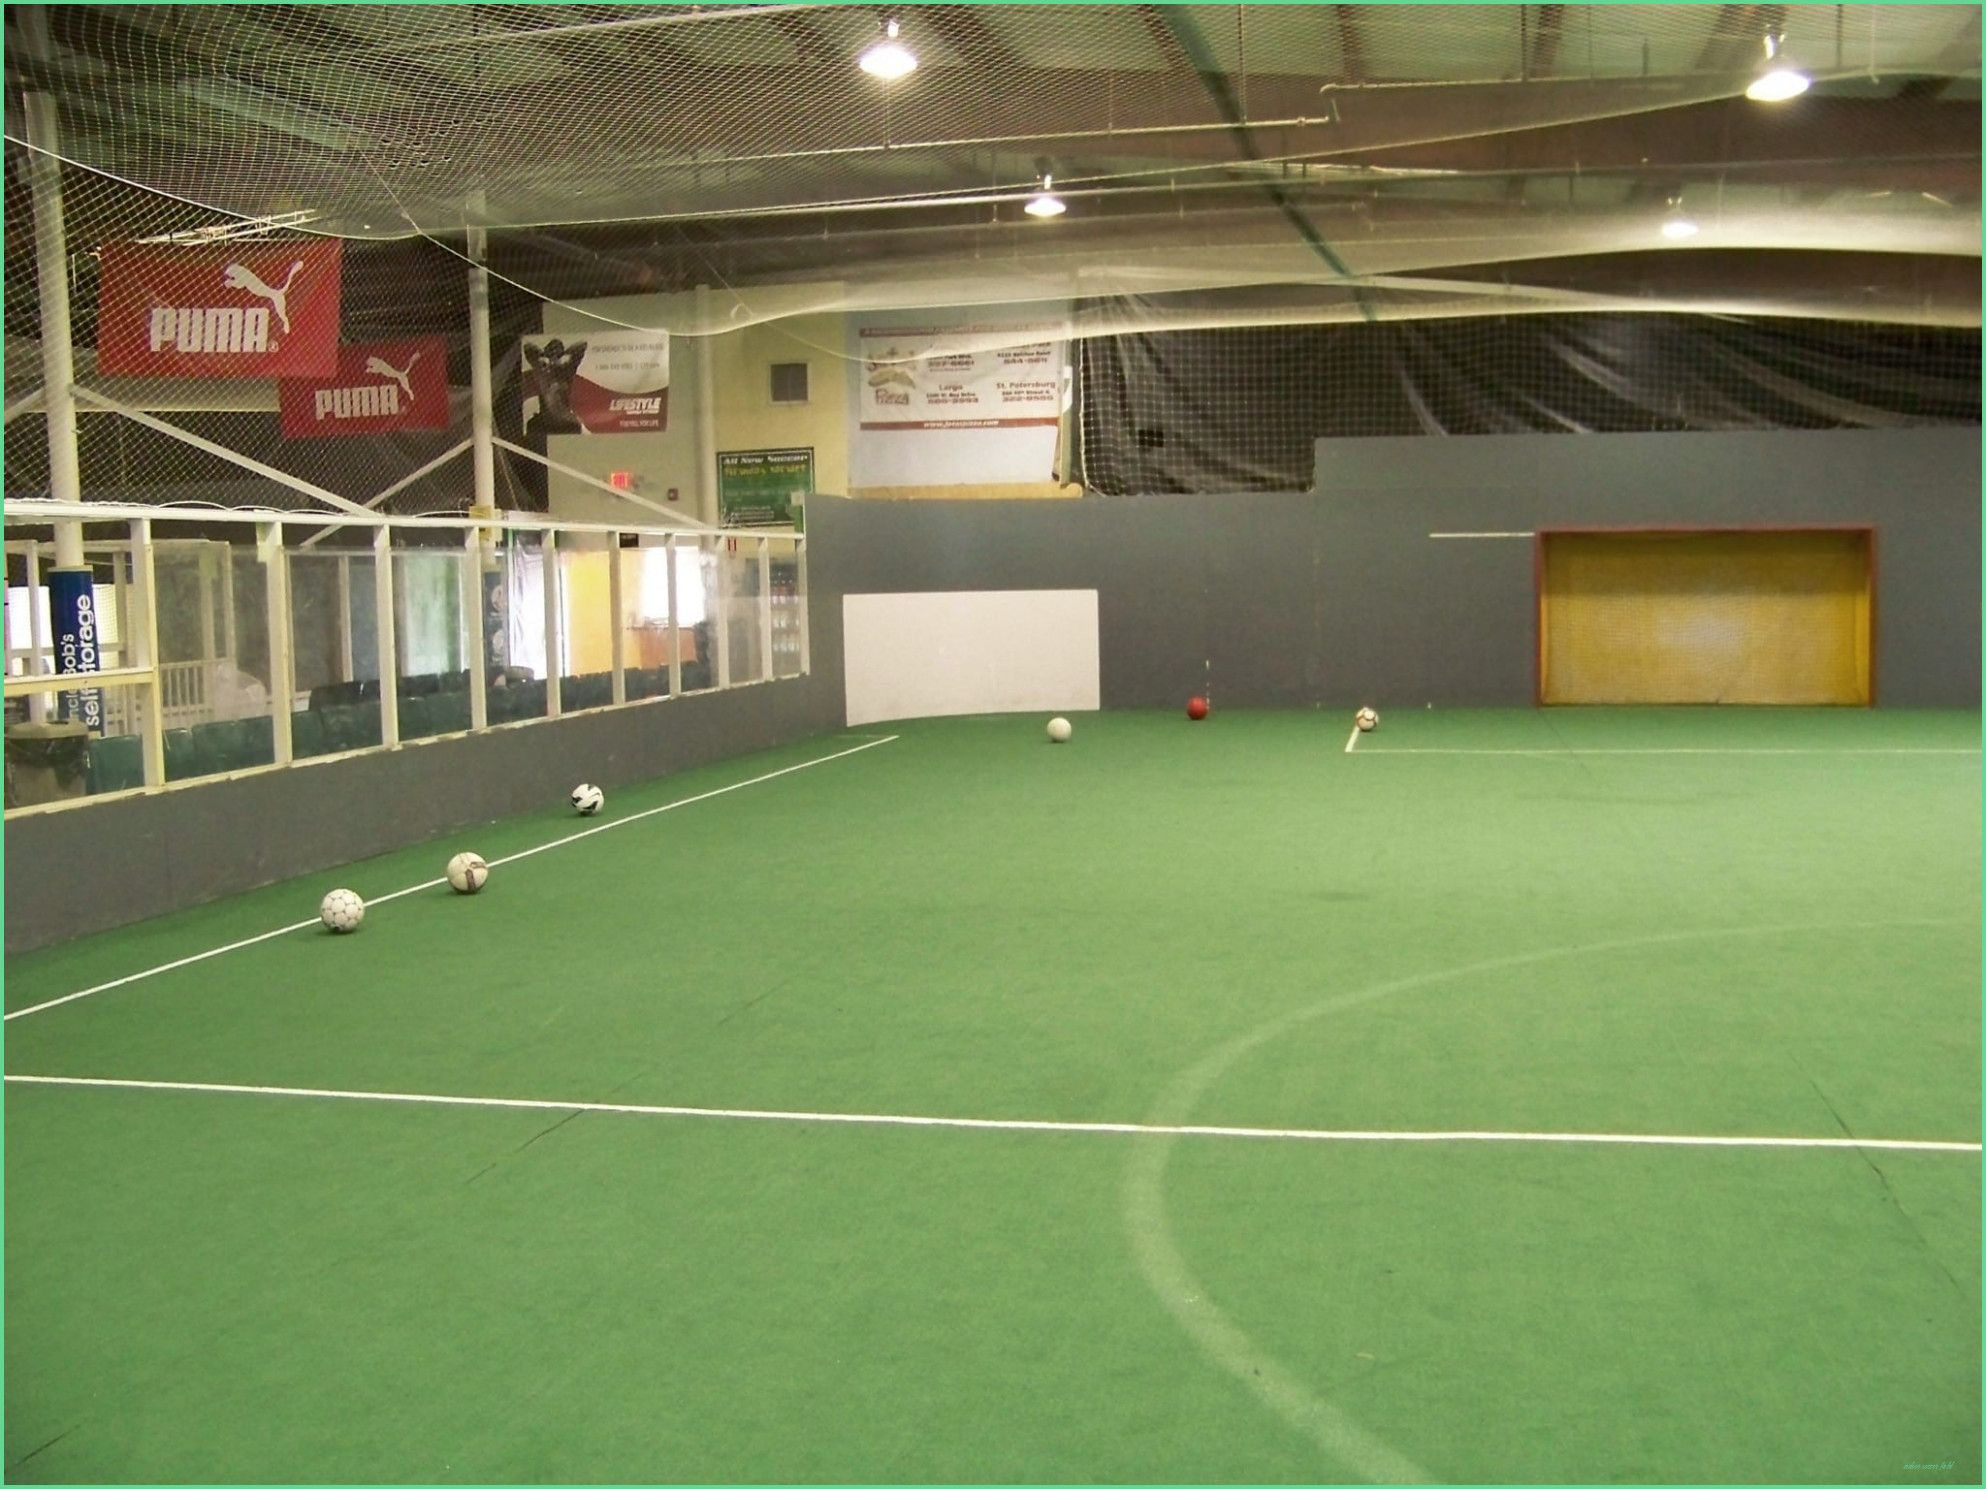 Pin By Marco Van De Pol On Indoor Voetbal In 2020 Indoor Soccer Field Soccer Field Soccer